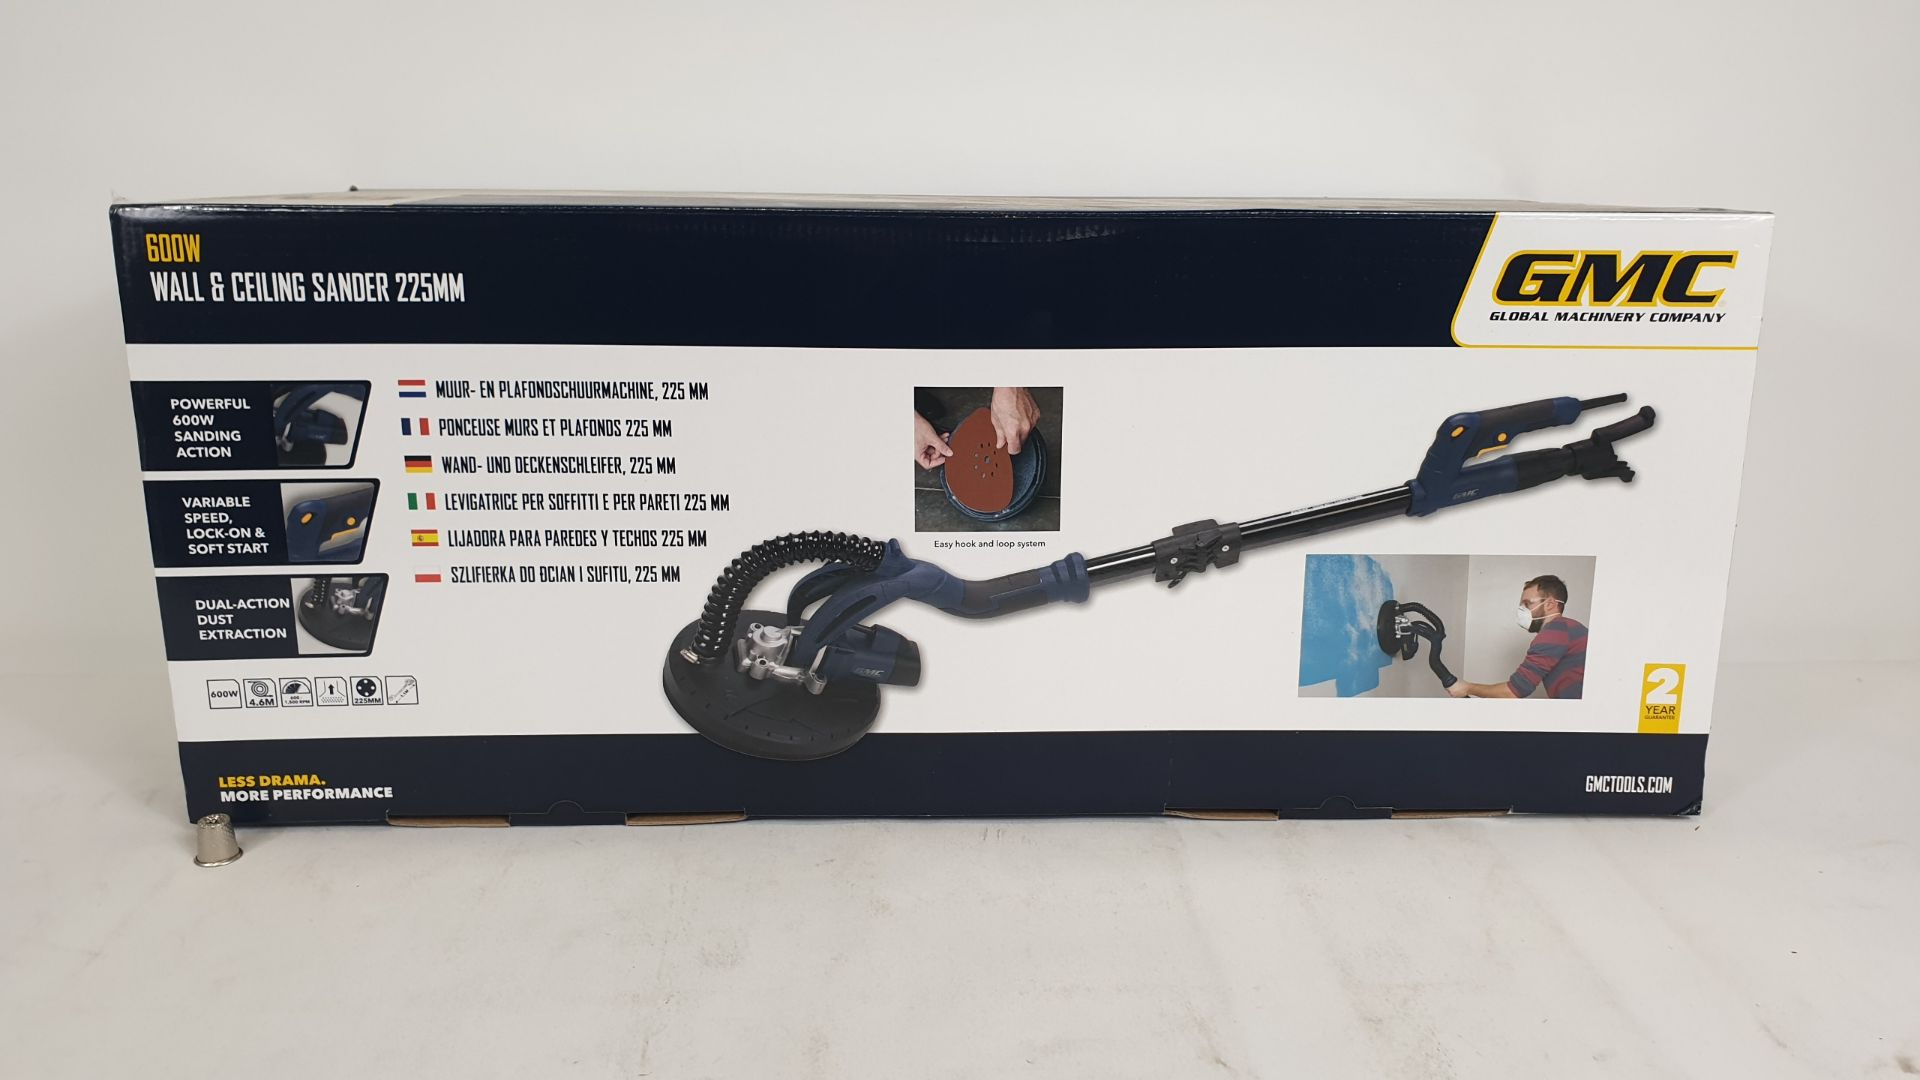 Lot 1560 - (LOT FOR THURSDAY 28TH MAY AUCTION) GMC 600W WALL AND CEILING SANDER 225M (PRODUCT CODE 264803) - (